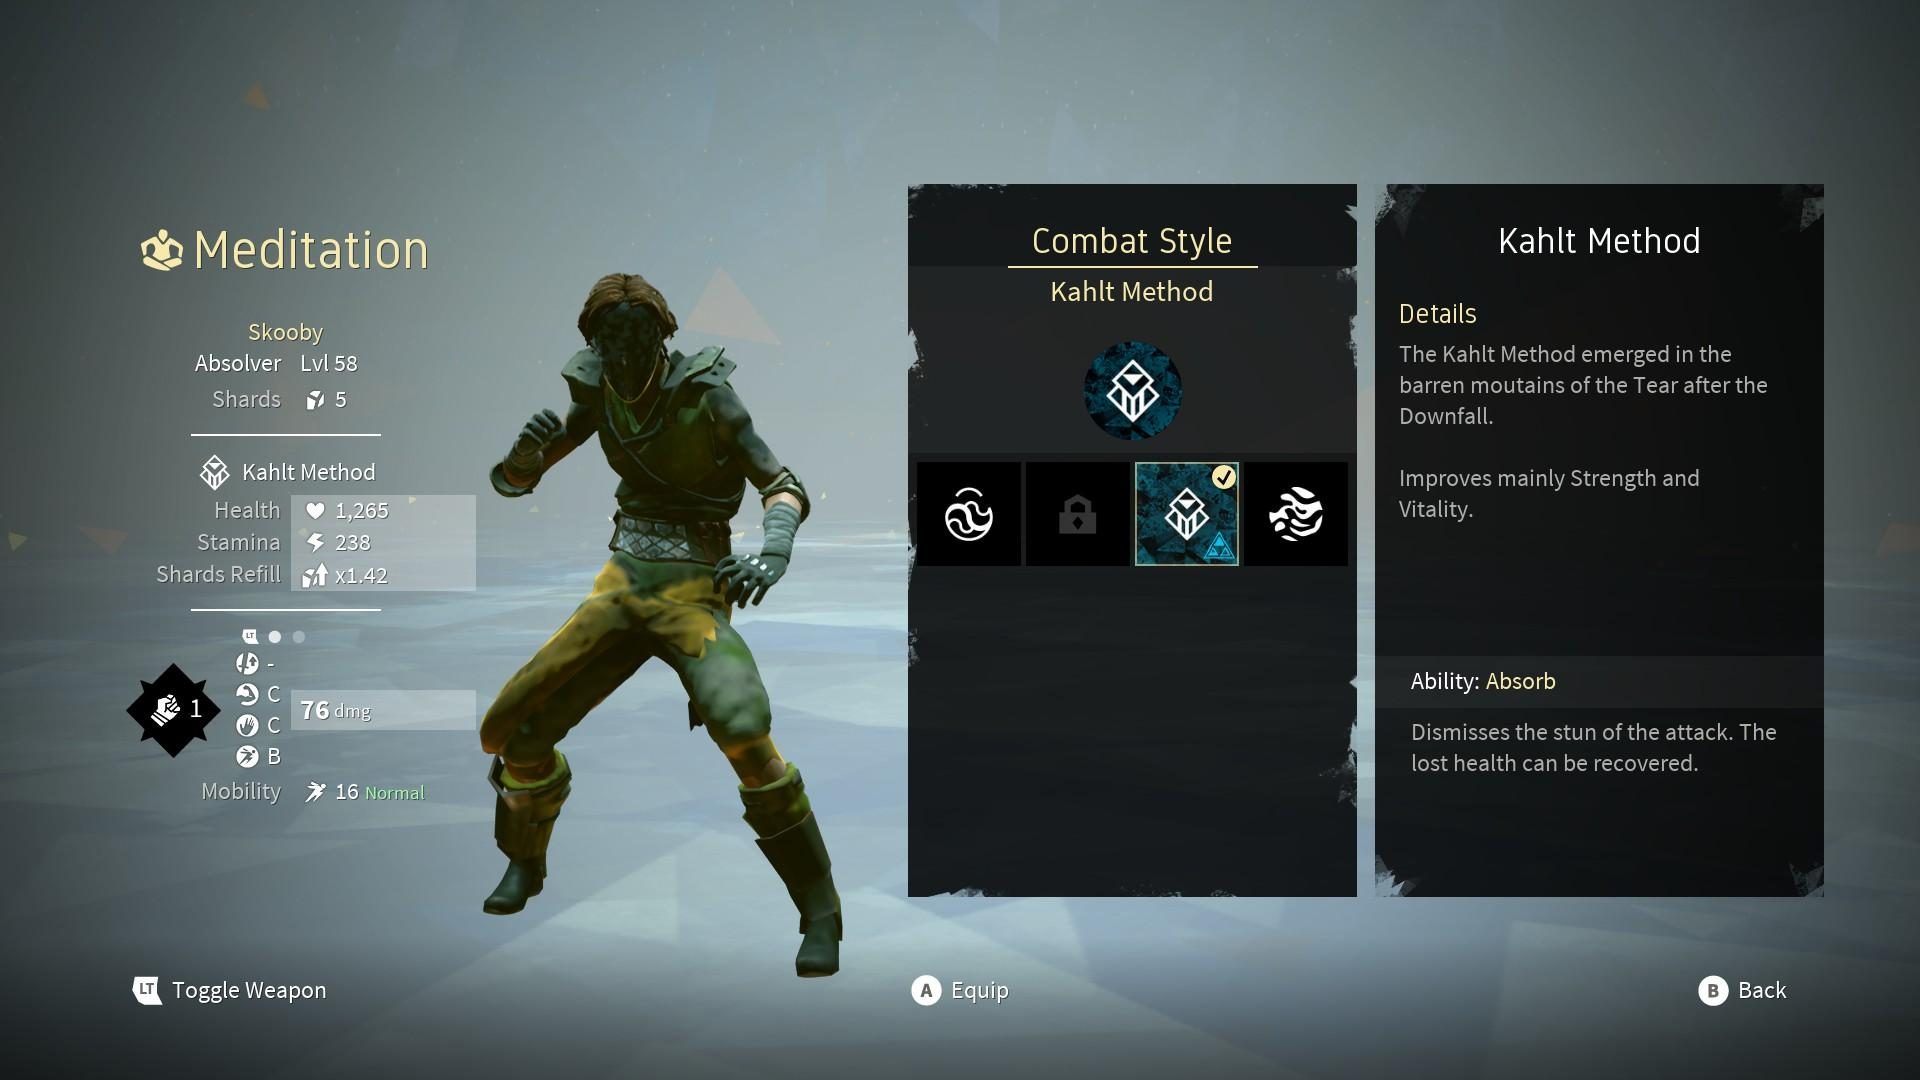 how to start a school in absolver